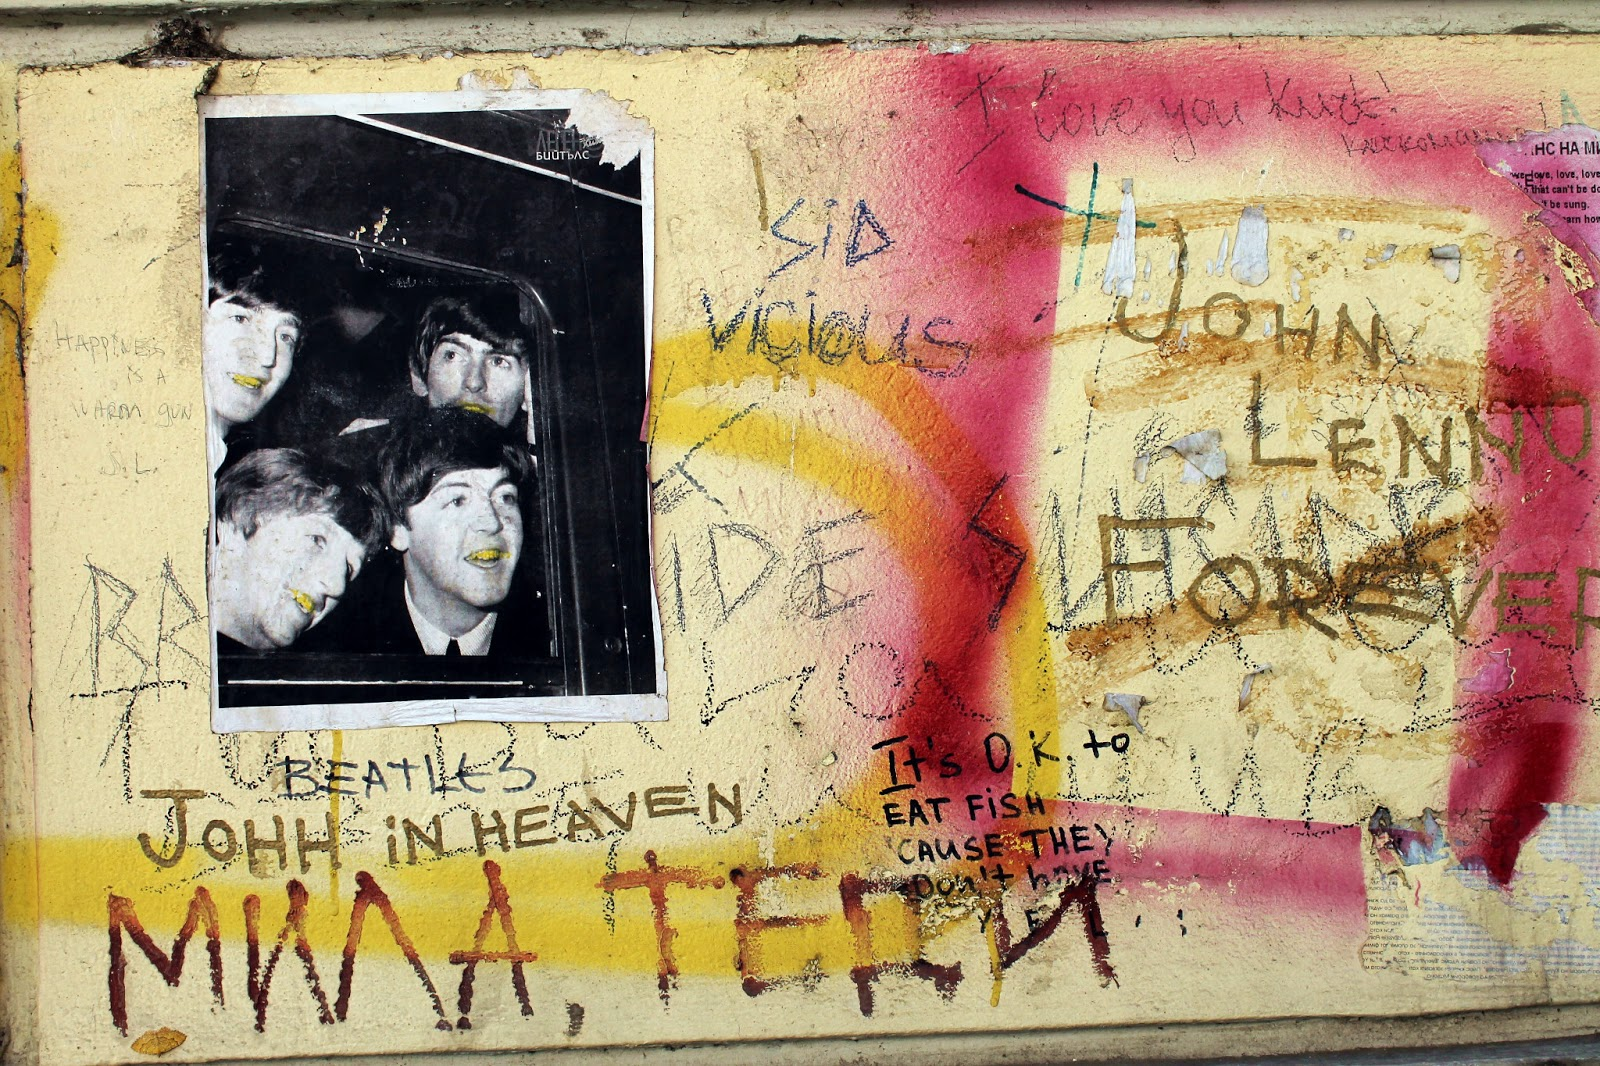 THIS BLOG WAS WRIT IN WATER: John Lennon Wall, Sofia, Bulgaria